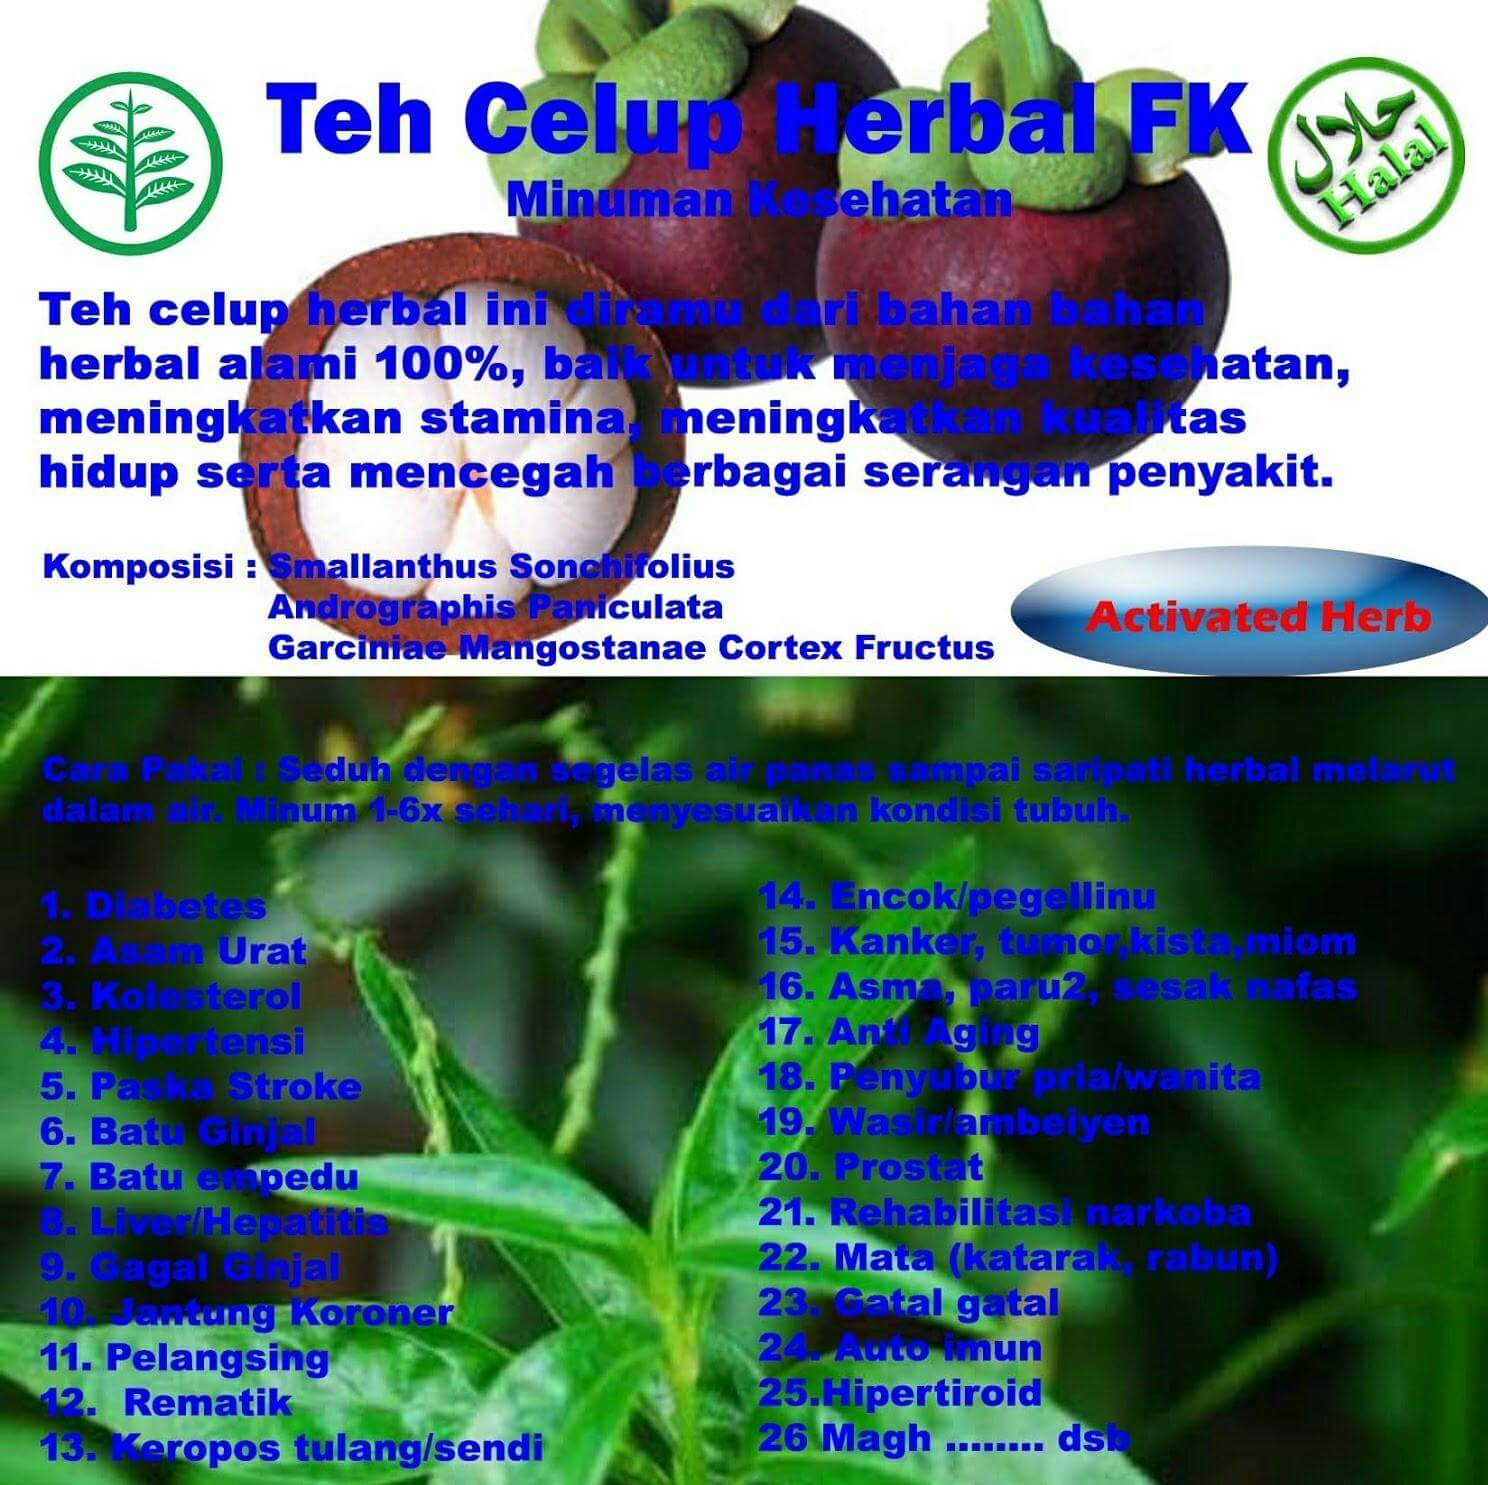 Teh Celup Herbal Fk: OBAT HERBAL